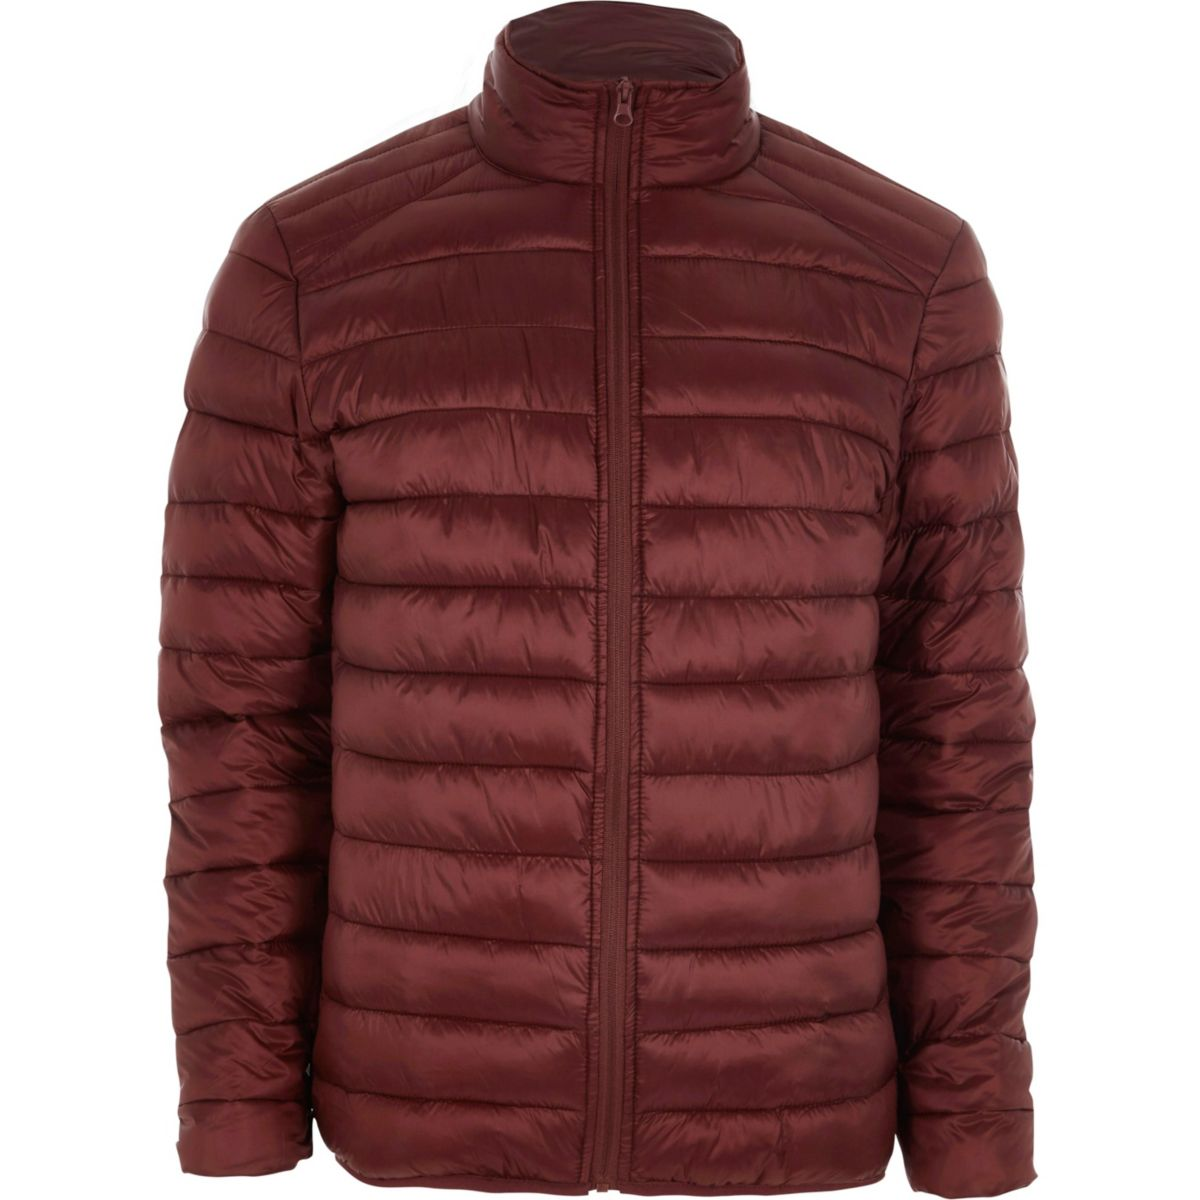 Puffer Jackets. Showing 48 of results that match your query. Search Product Result. Product - Time and Tru Women's Hooded Puffer Jacket. Best Seller. Product Image. Price Product - Womens Quilted Puffer Coat with Belt Lightweight Detachable Faux Fur Hoodie Jacket Winter Outerwear. Clearance. Product Image. Price $ 99 - $